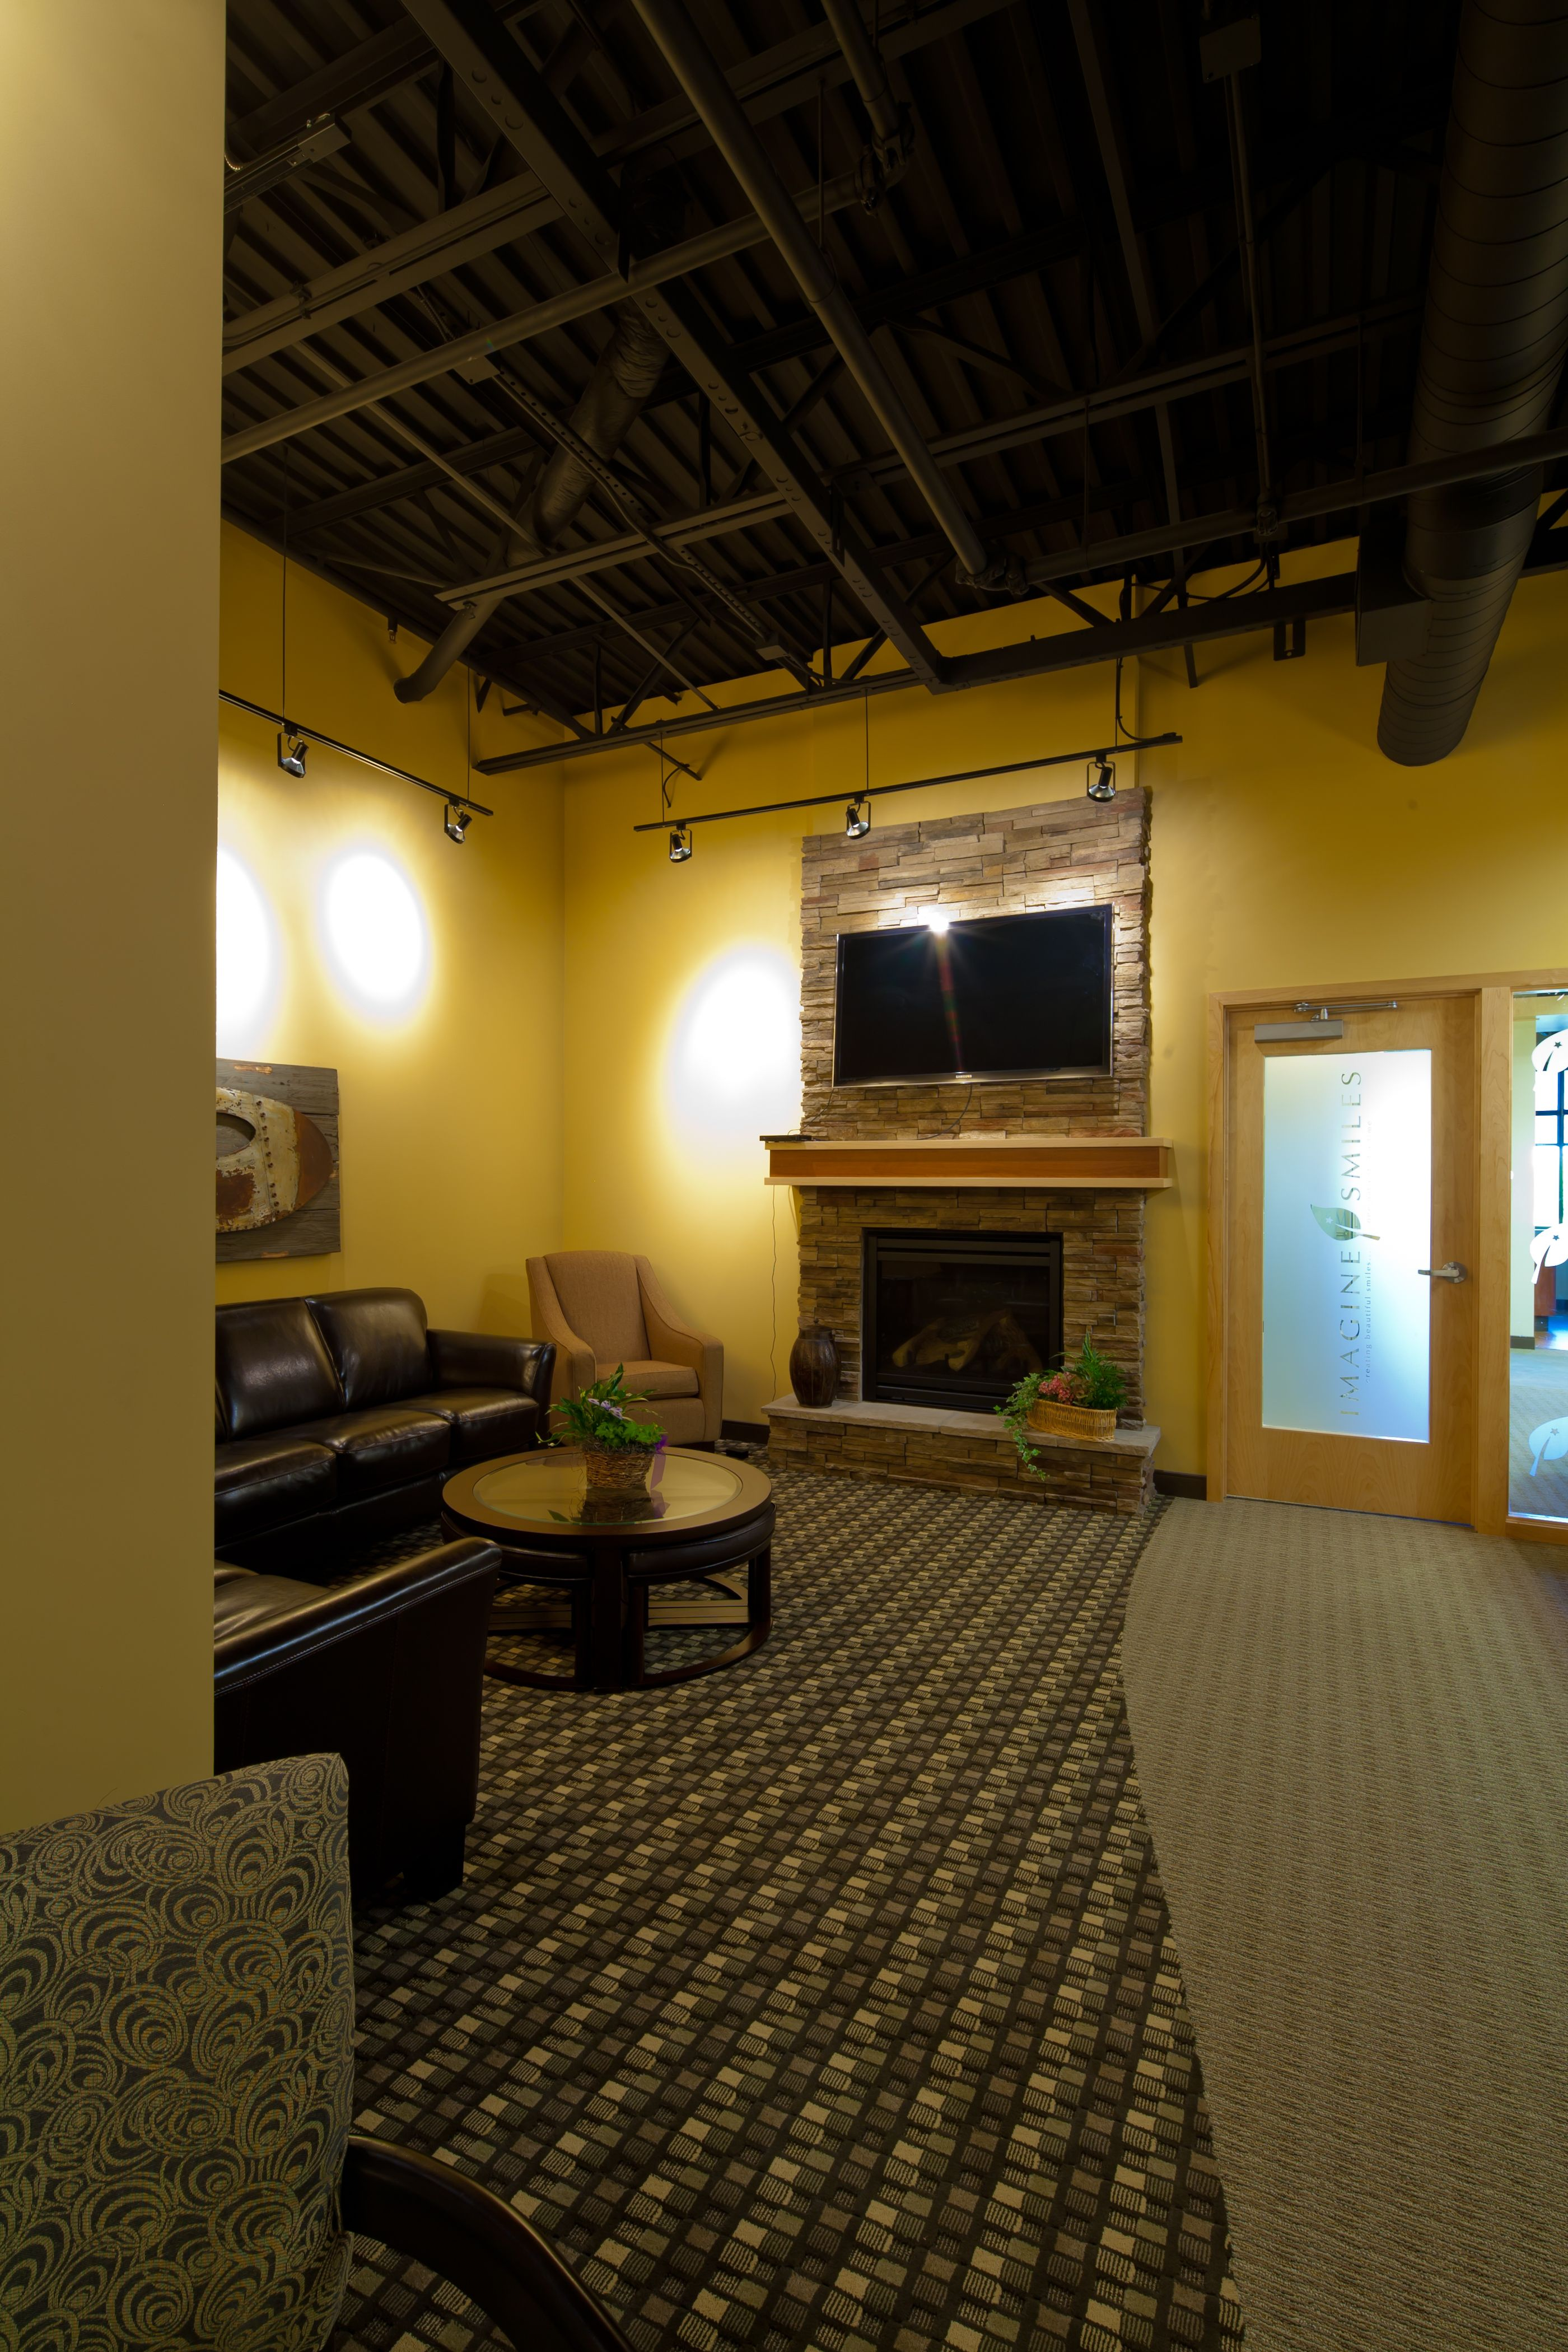 chiropractic office design for chiropractic office. This Dental Office Waiting Room Is Warm And Inviting With A Stone Fireplace Plush Carpet Chiropractic Design For